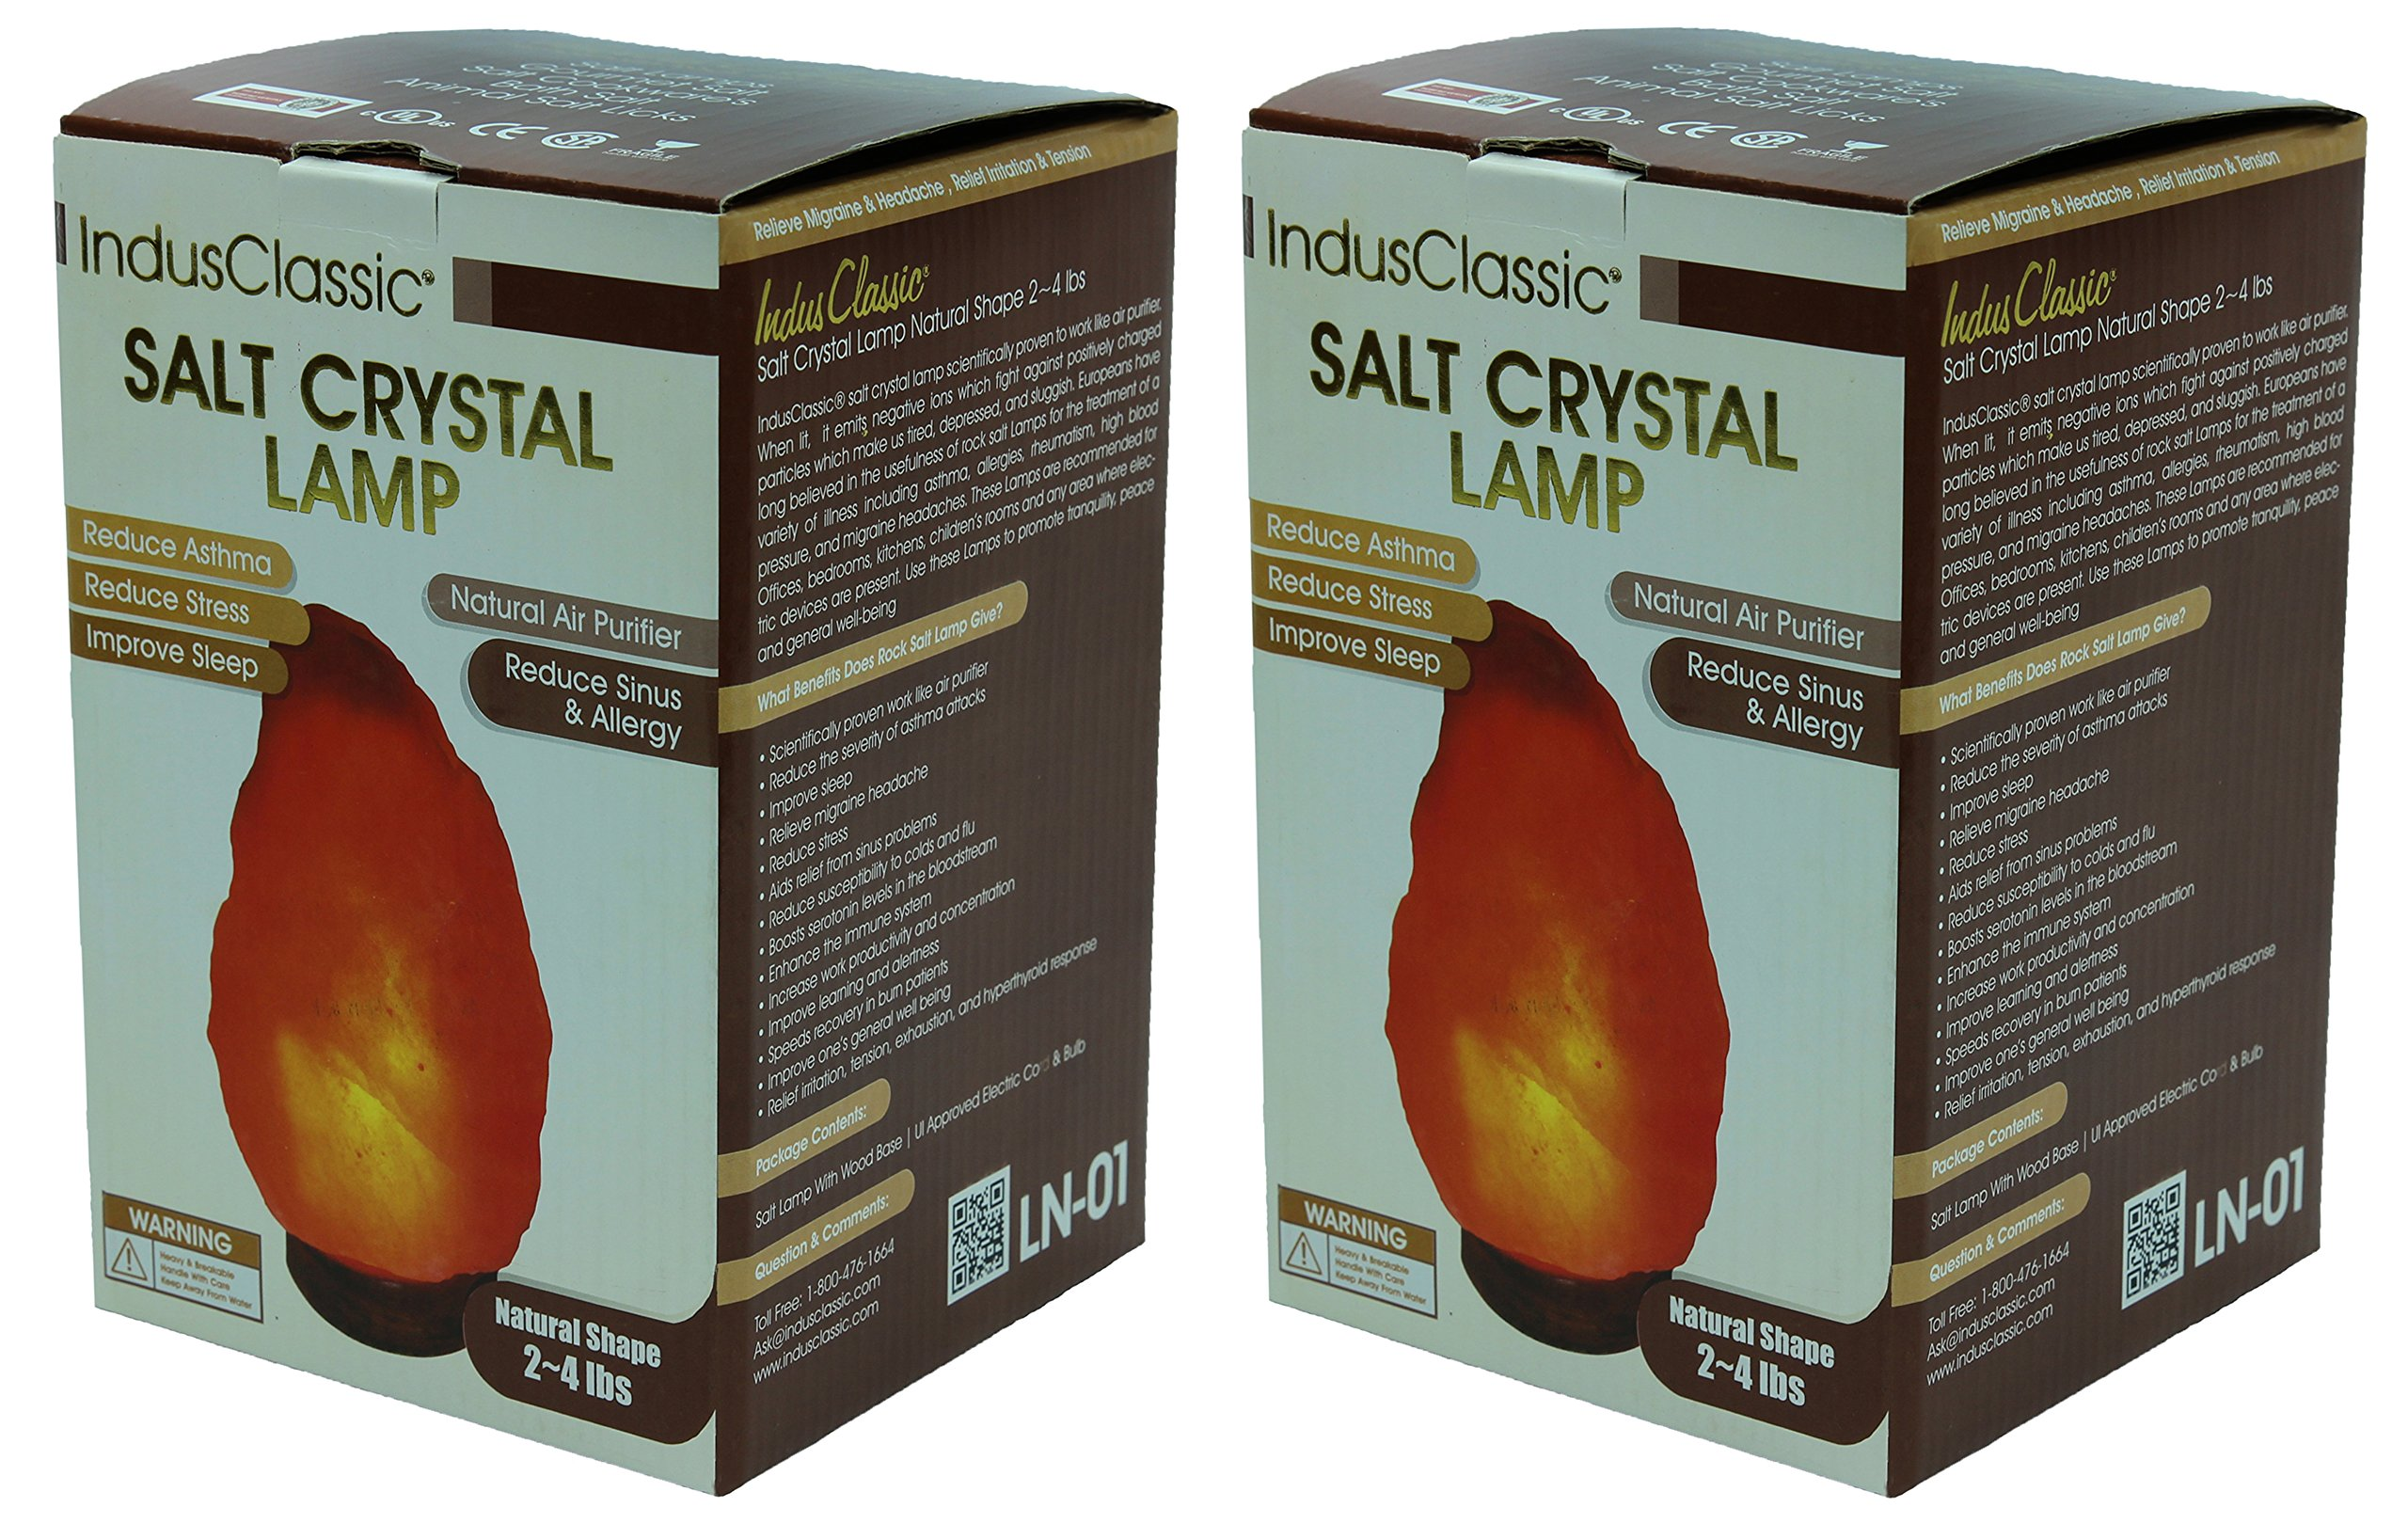 Indusclassic LN-1 Pack Of 2 Natural Himalayan Crystal Rock Salt Lamp Ionizer Air Purifier 2~4 lbs / UL Listed Cord and Dimmer Control Switch, Exceptional Quality Packaging